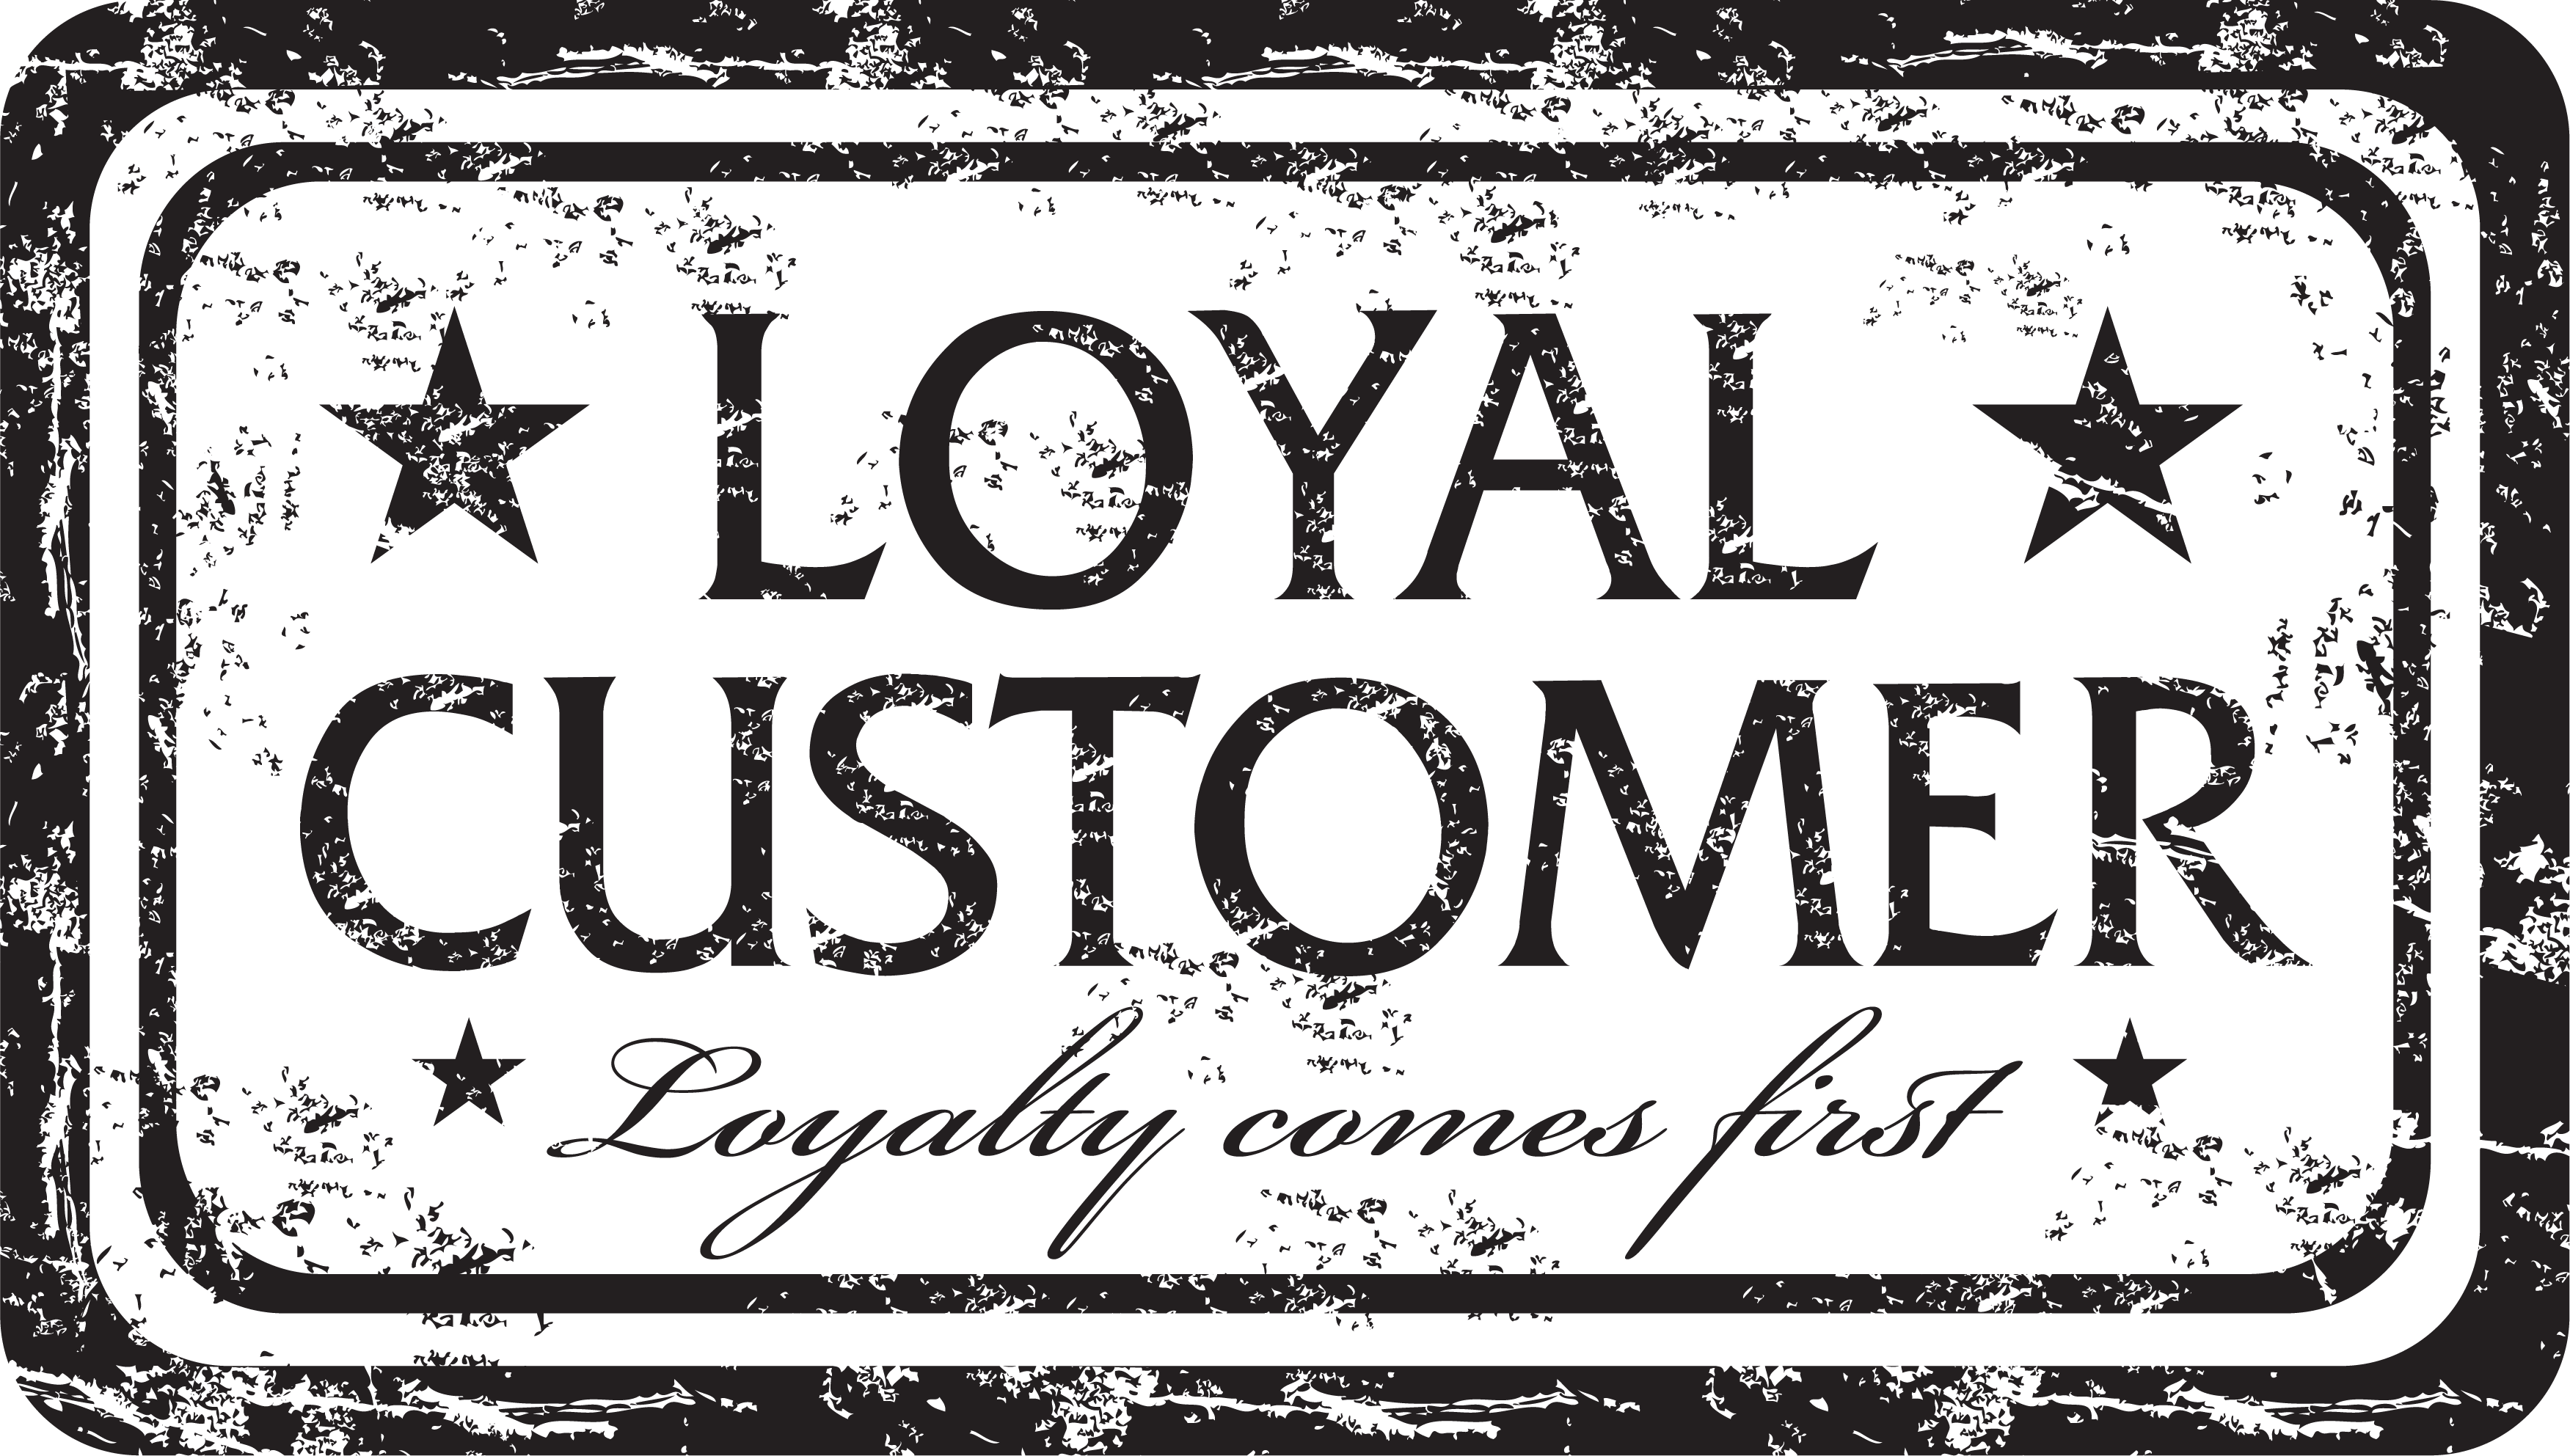 Bonus Freebie - For Loyal Customers, Sentio Members, Diamante Members, Eterna Members, and Carissimi VIP